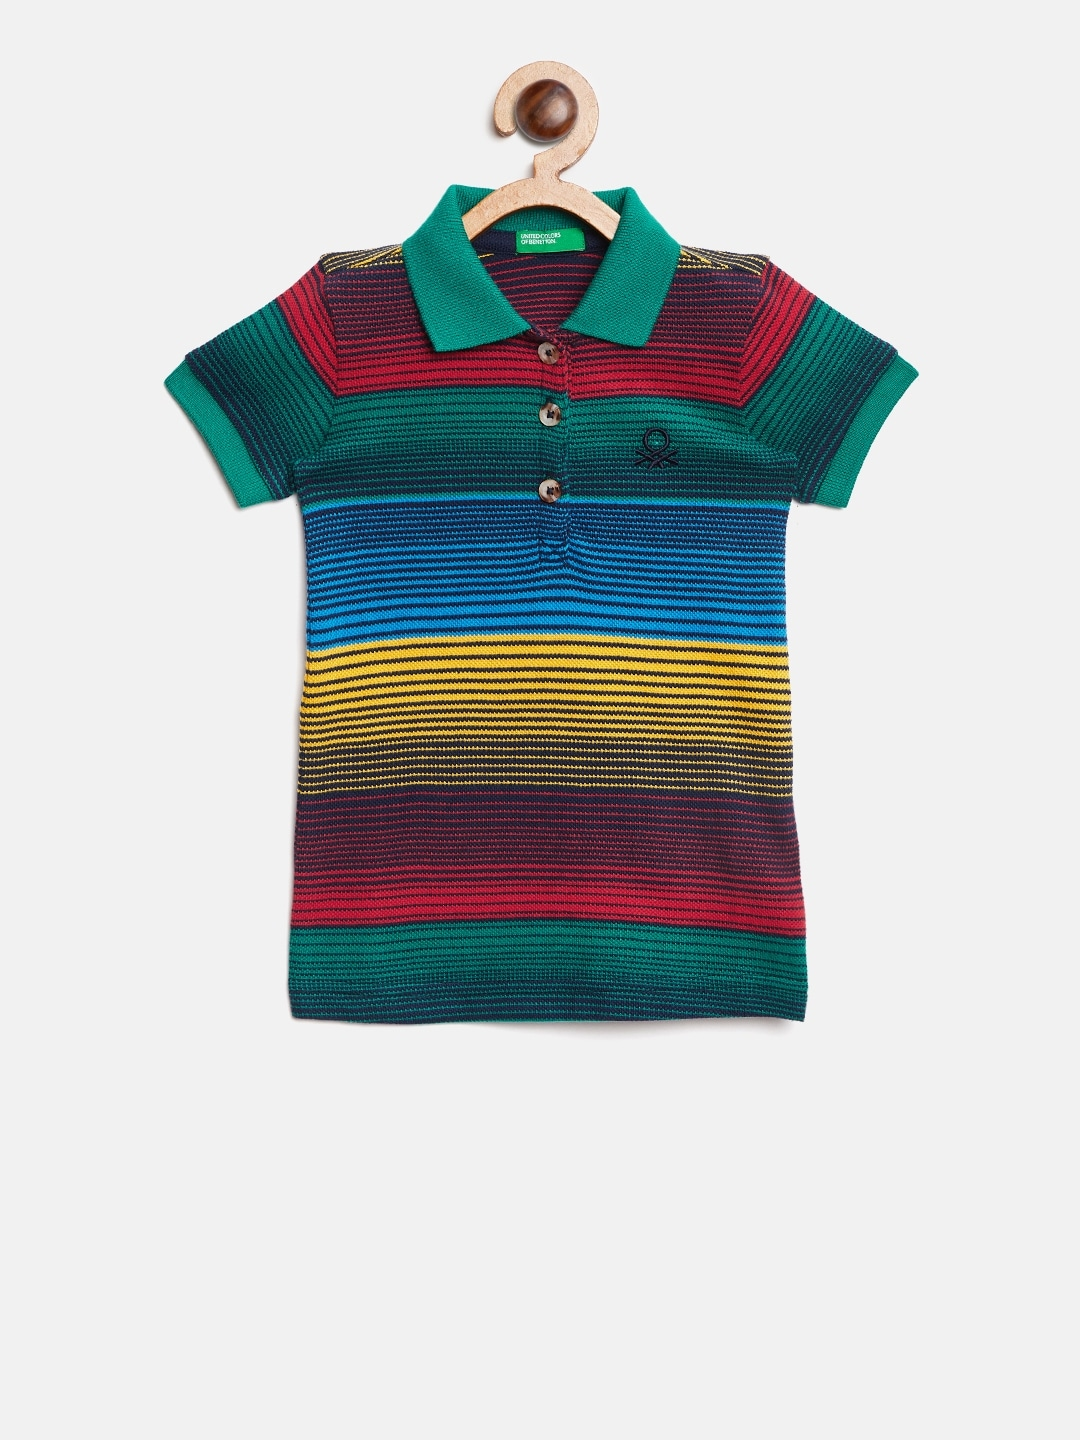 0dc6fdf28e9 Kids T shirts - Buy T shirts for Kids Online in India Myntra